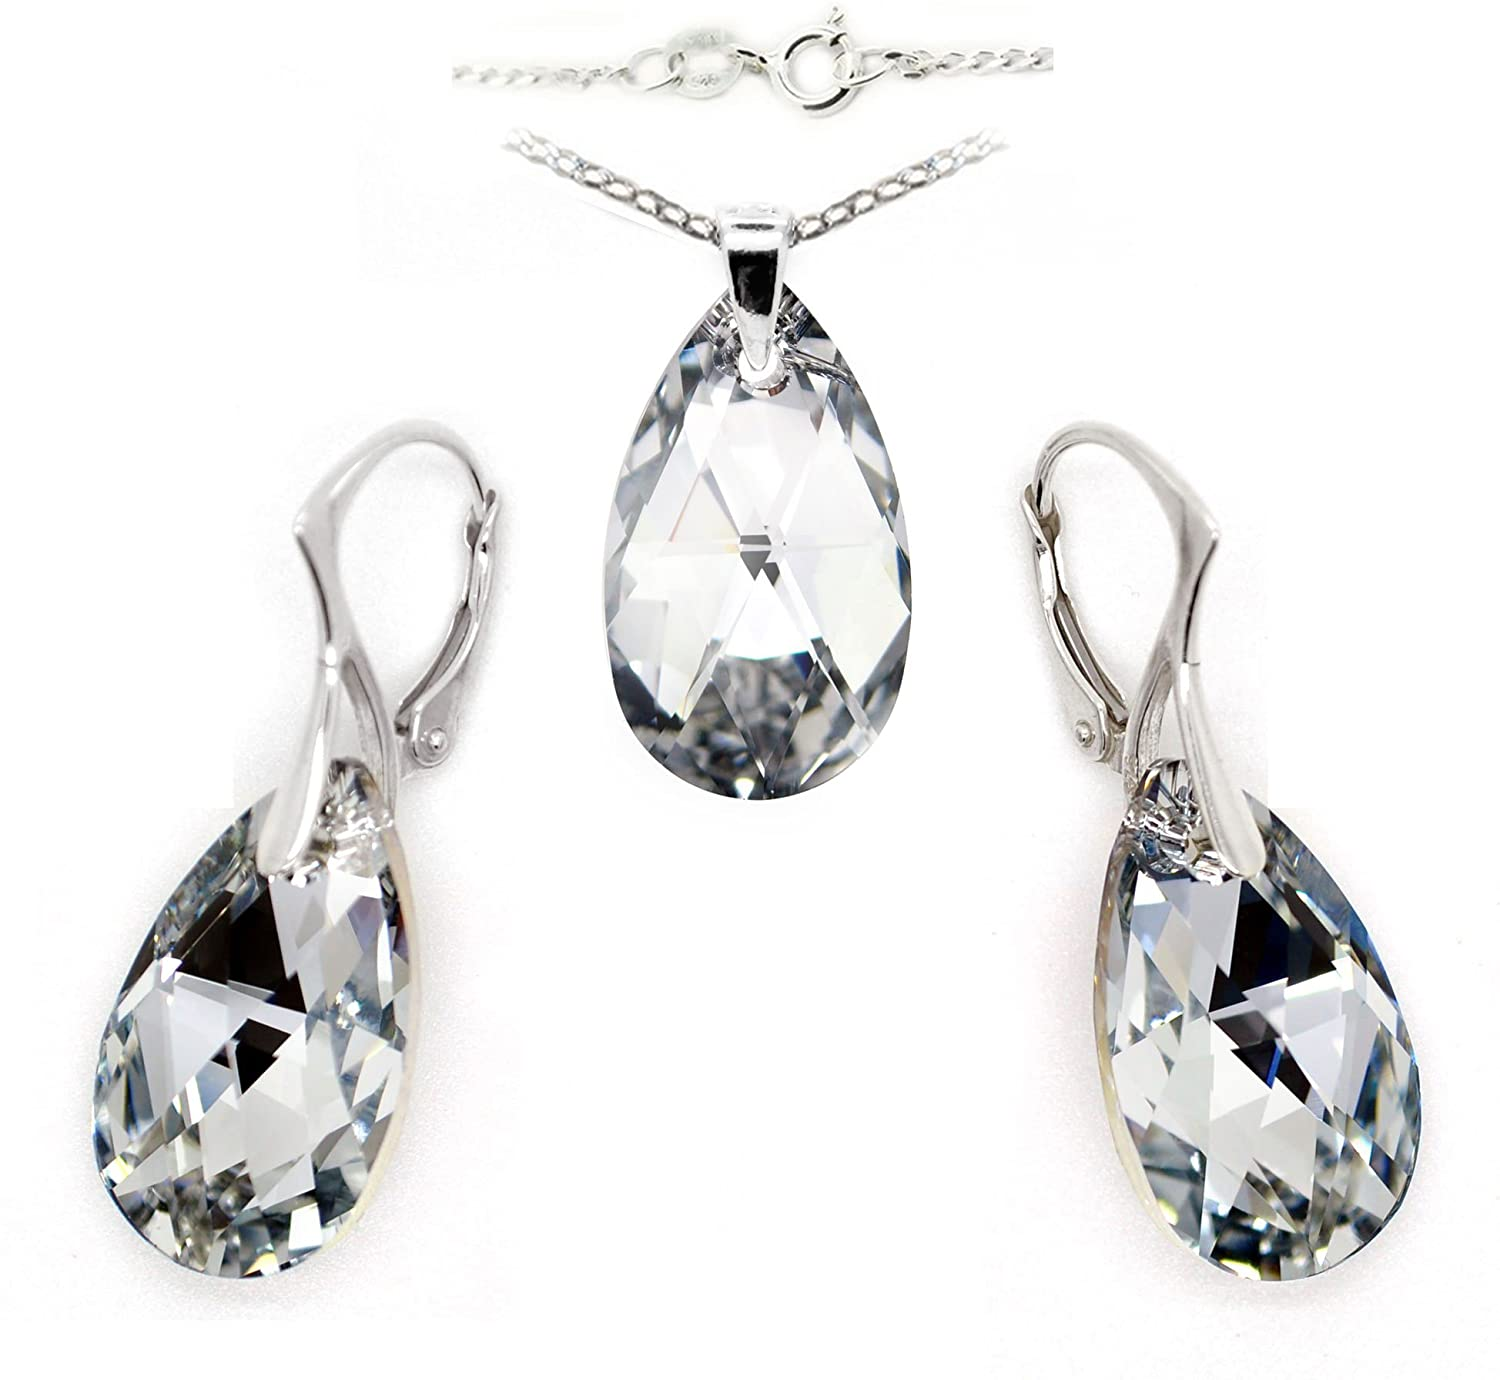 April Clear Birthstone Sterling Silver Made with Swarovski Crystals Teardrop Necklace and Leverback Earrings Set, 18